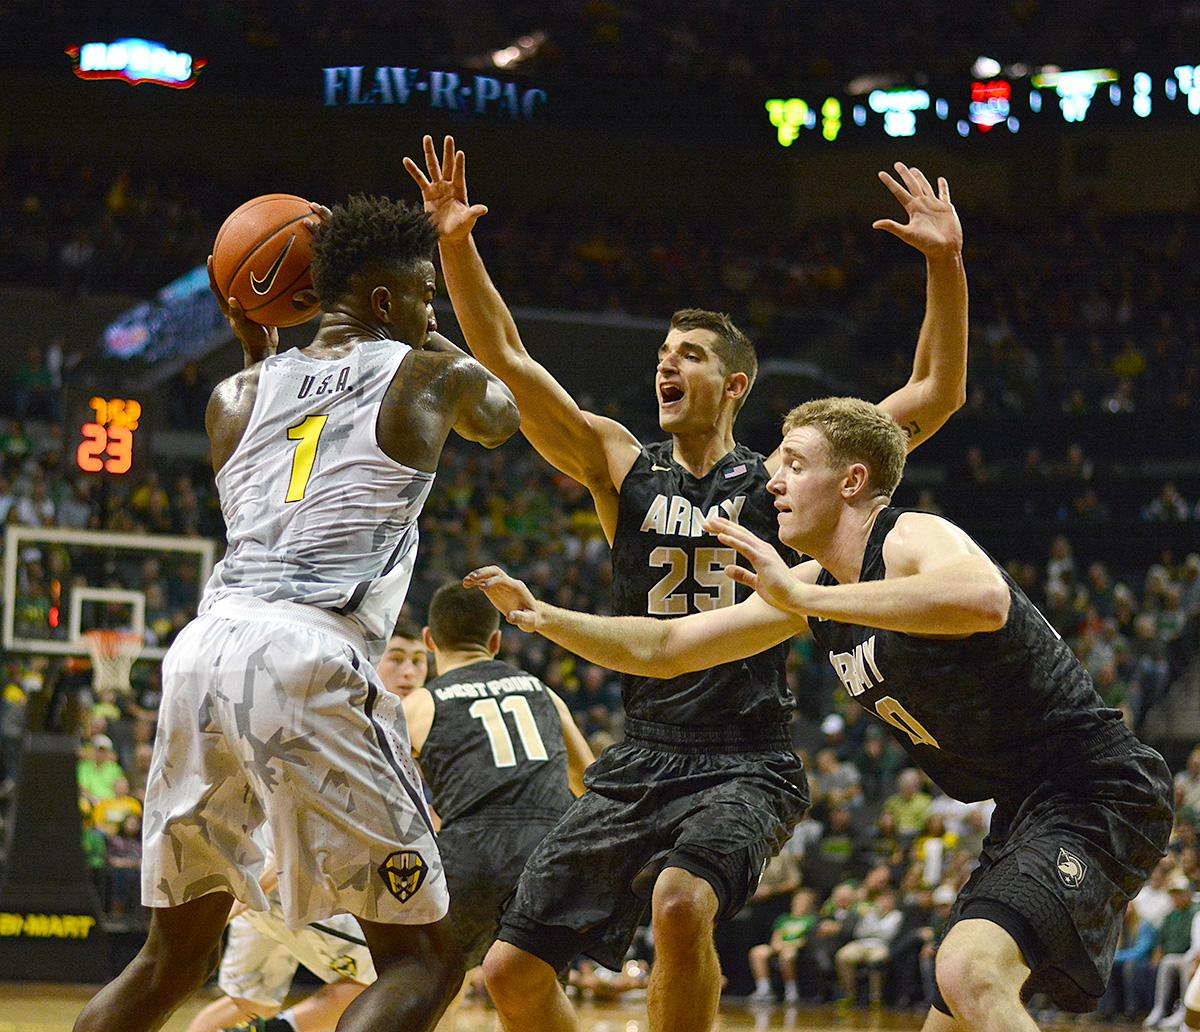 Ducks' Jordan Bell (#1) protects the ball under high pressure from Army's Luke Morrison (#25) and Mac Hoffman (#20). In front of a sold out crowd, Oregon defeated Army 91-77 on opening night. Photo by Jacob Smith, Oregon News Lab